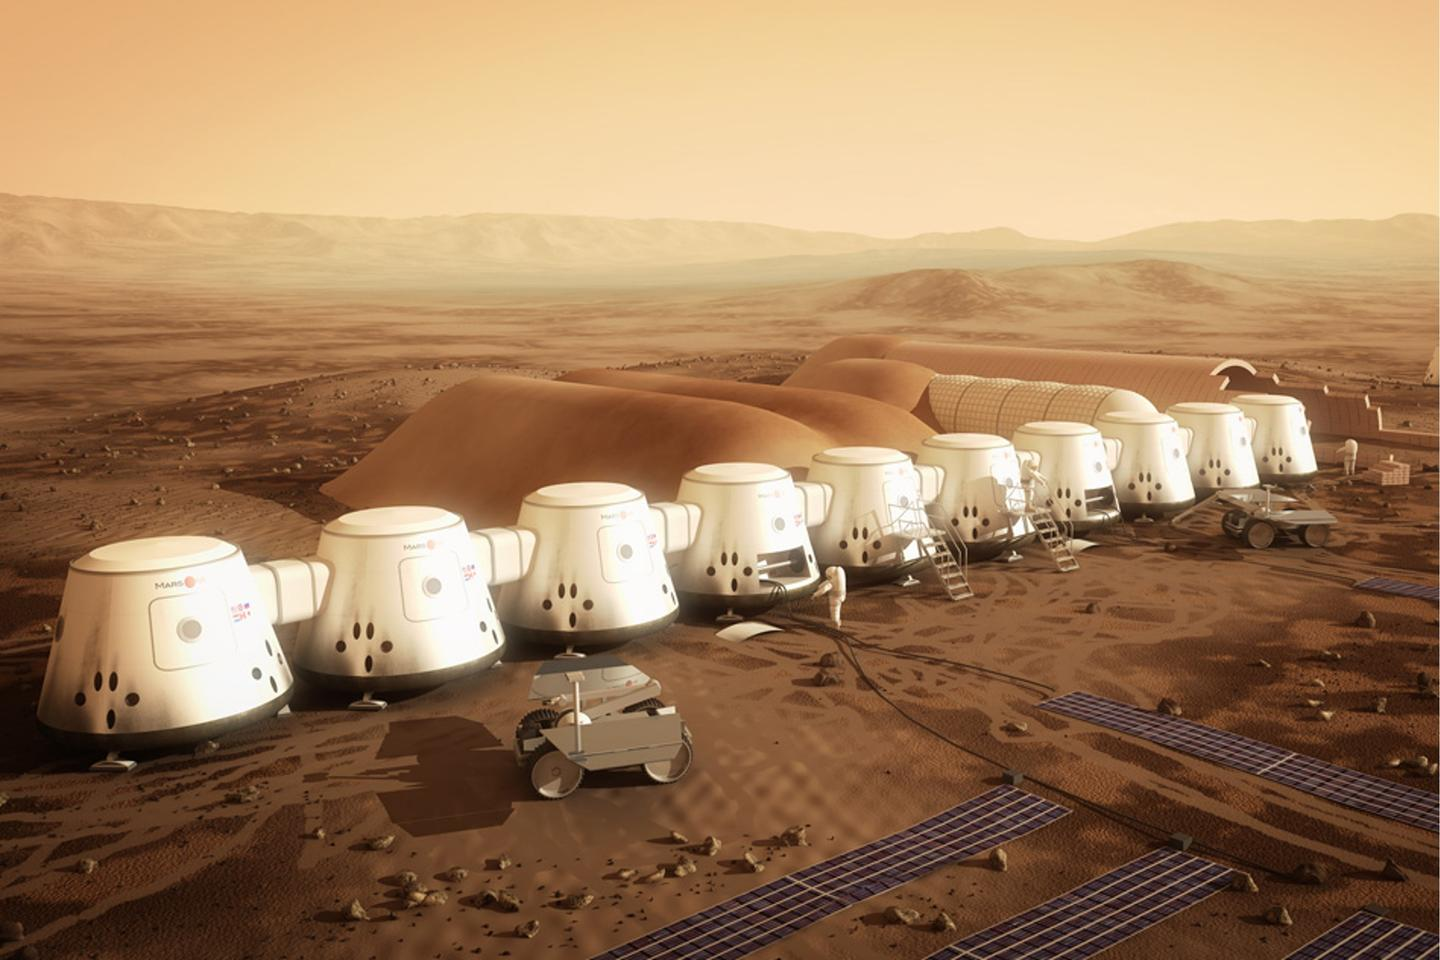 Artist's concept of the Mars On e colony (Image: Mars One)